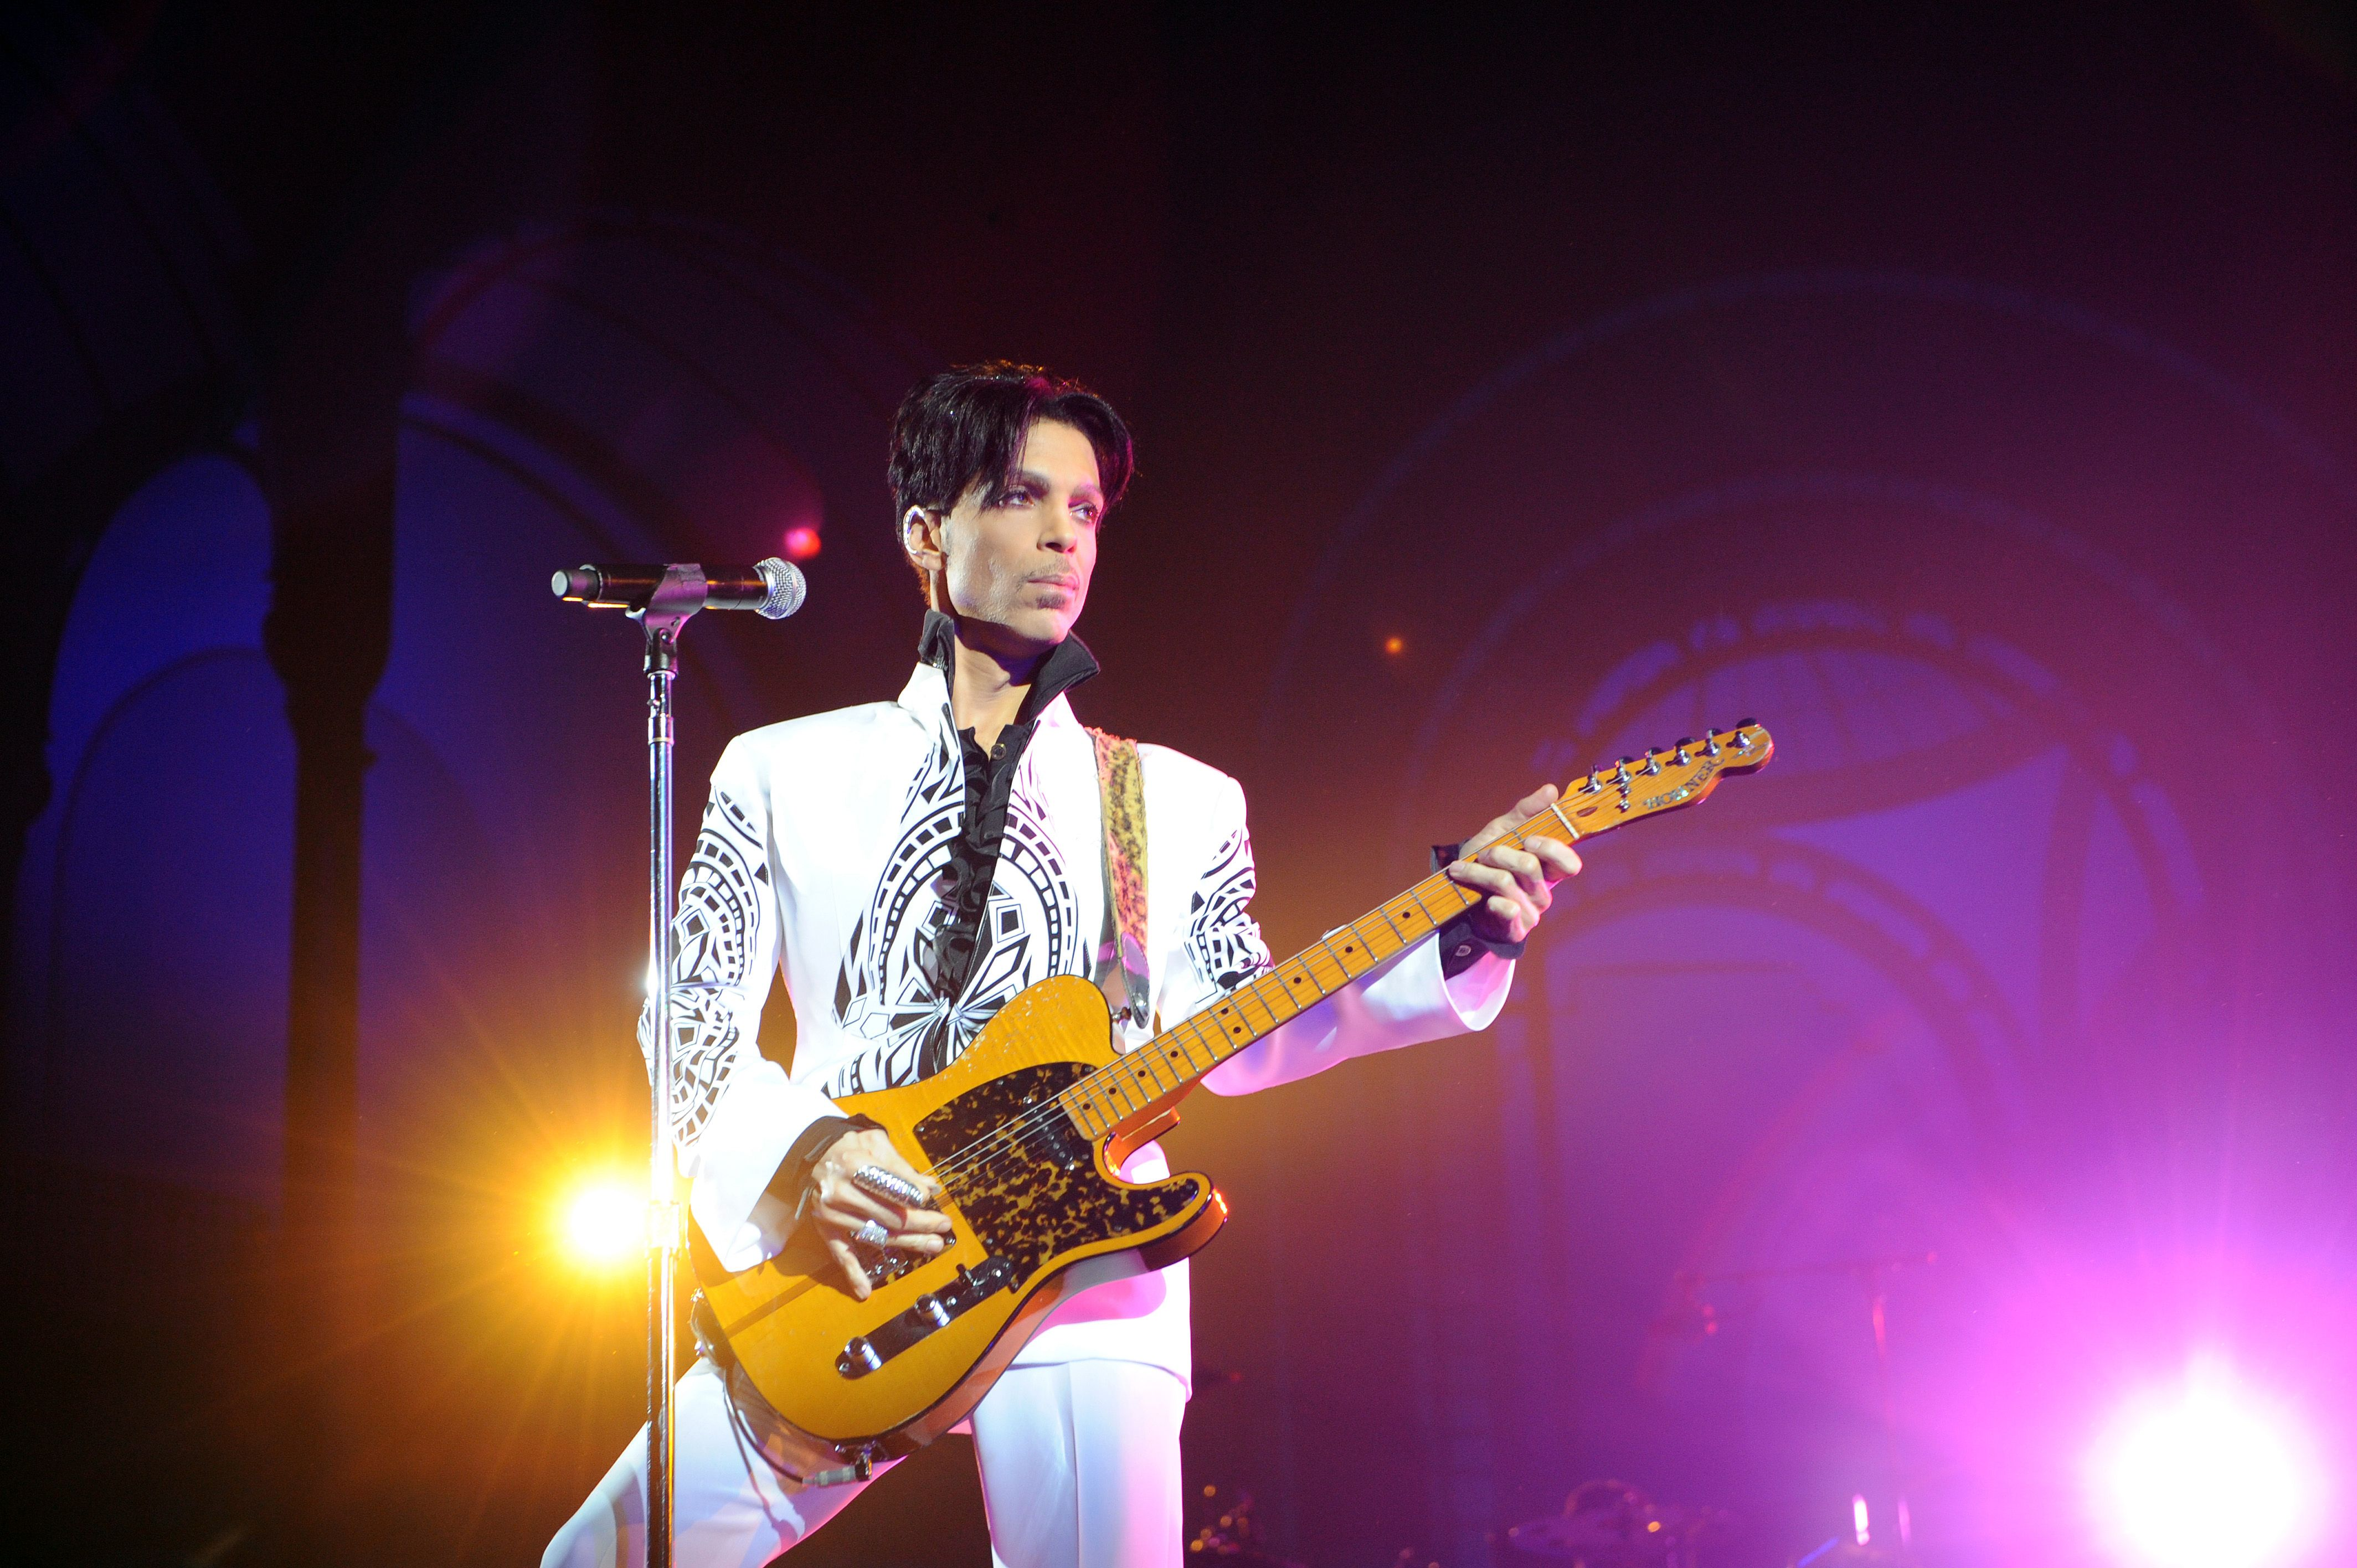 A New Prince Album Will Feature Some of His Most Famous Unreleased Demos